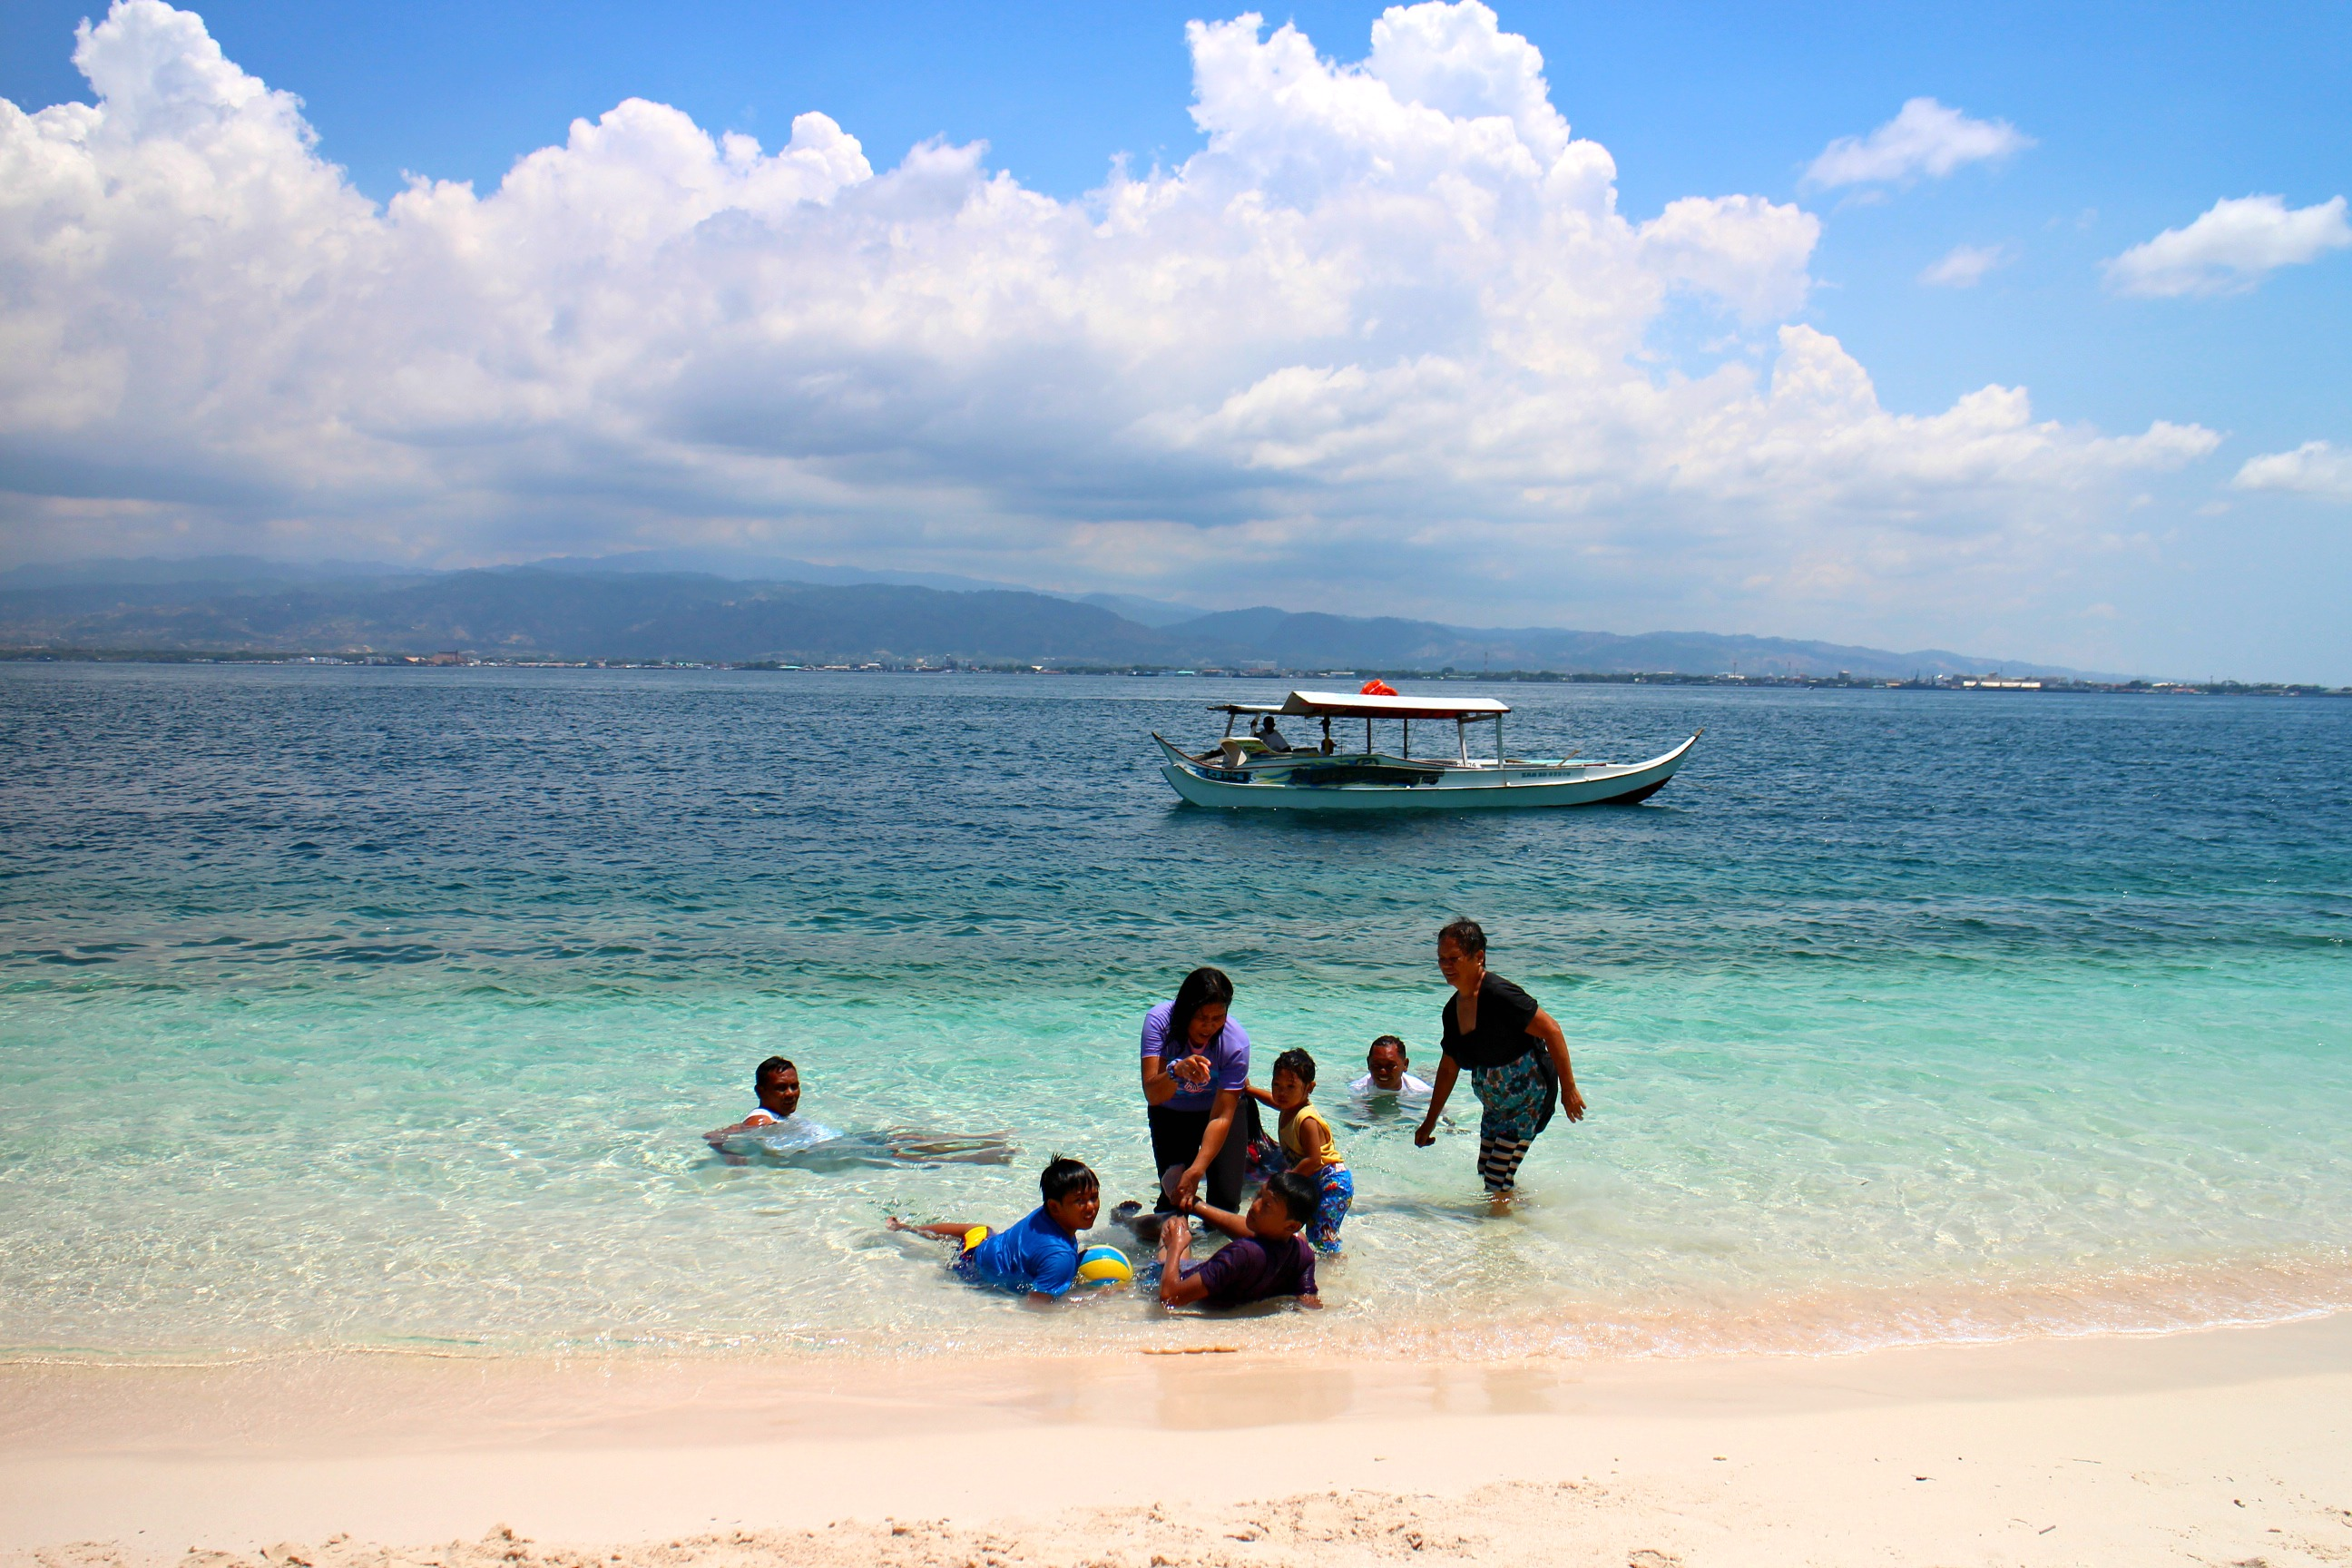 Sta. Cruz Island, Zamboanga City, PH - 2015